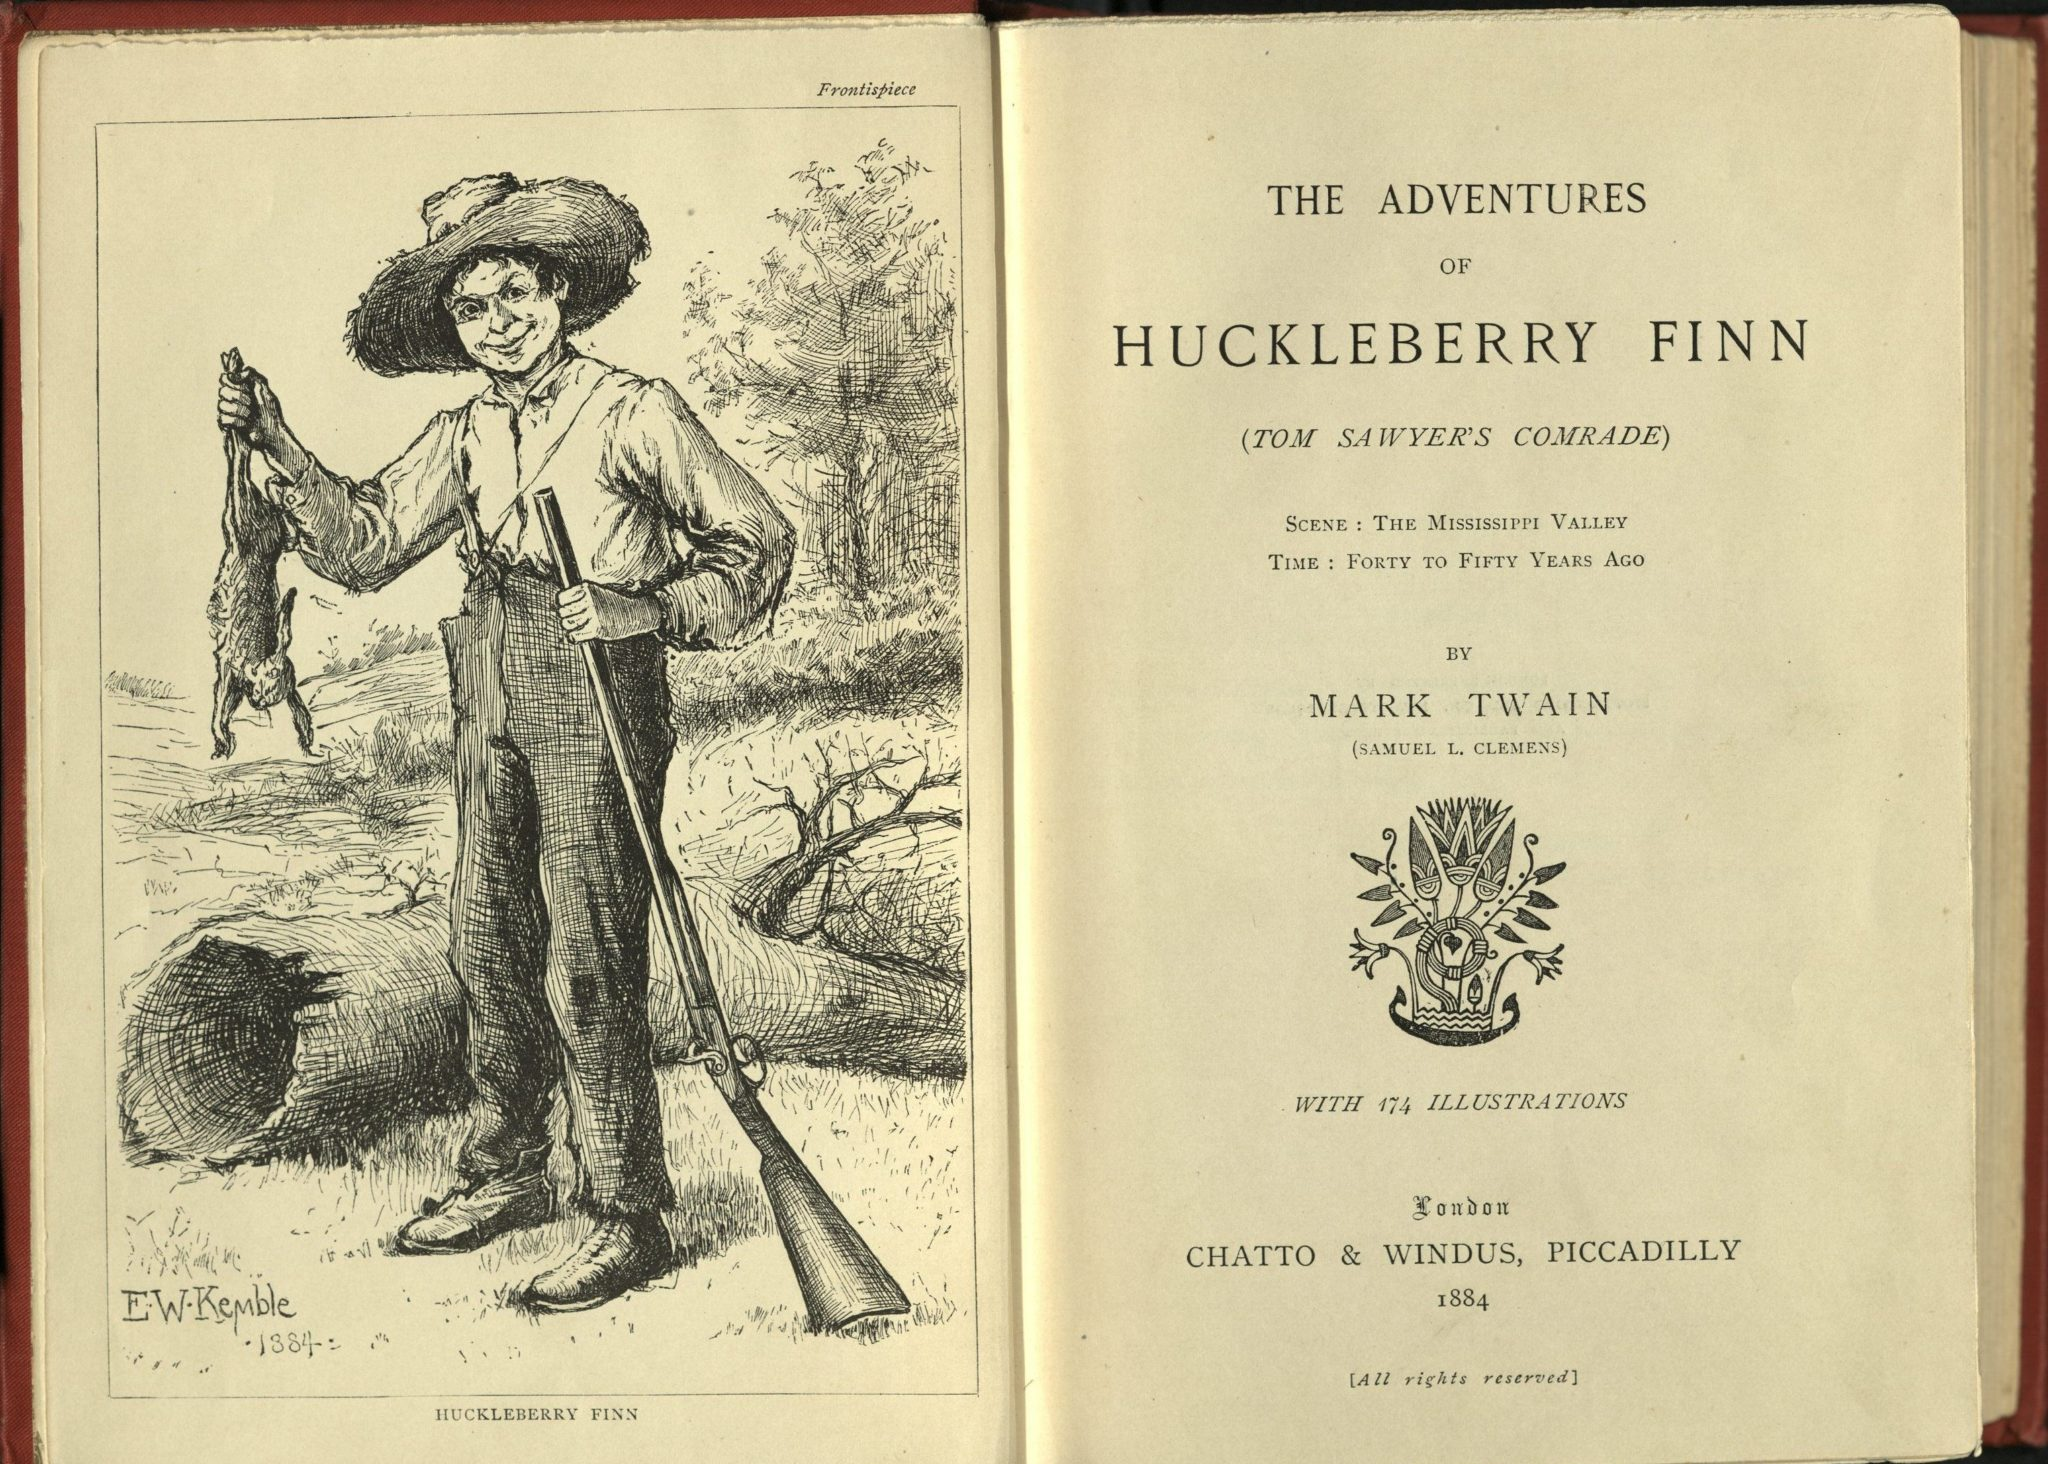 an examination of life by the river in the novel the adventures of huckleberry finn Many believe that the adventures of huckleberry finn qualifies as the great american novel because of the great american motifs that arise - individualism, freedom, independence ultimately, this is one of those books that was truly a first, having been a part of starting a new literary tradition and bringing readers an unfiltered look at real.